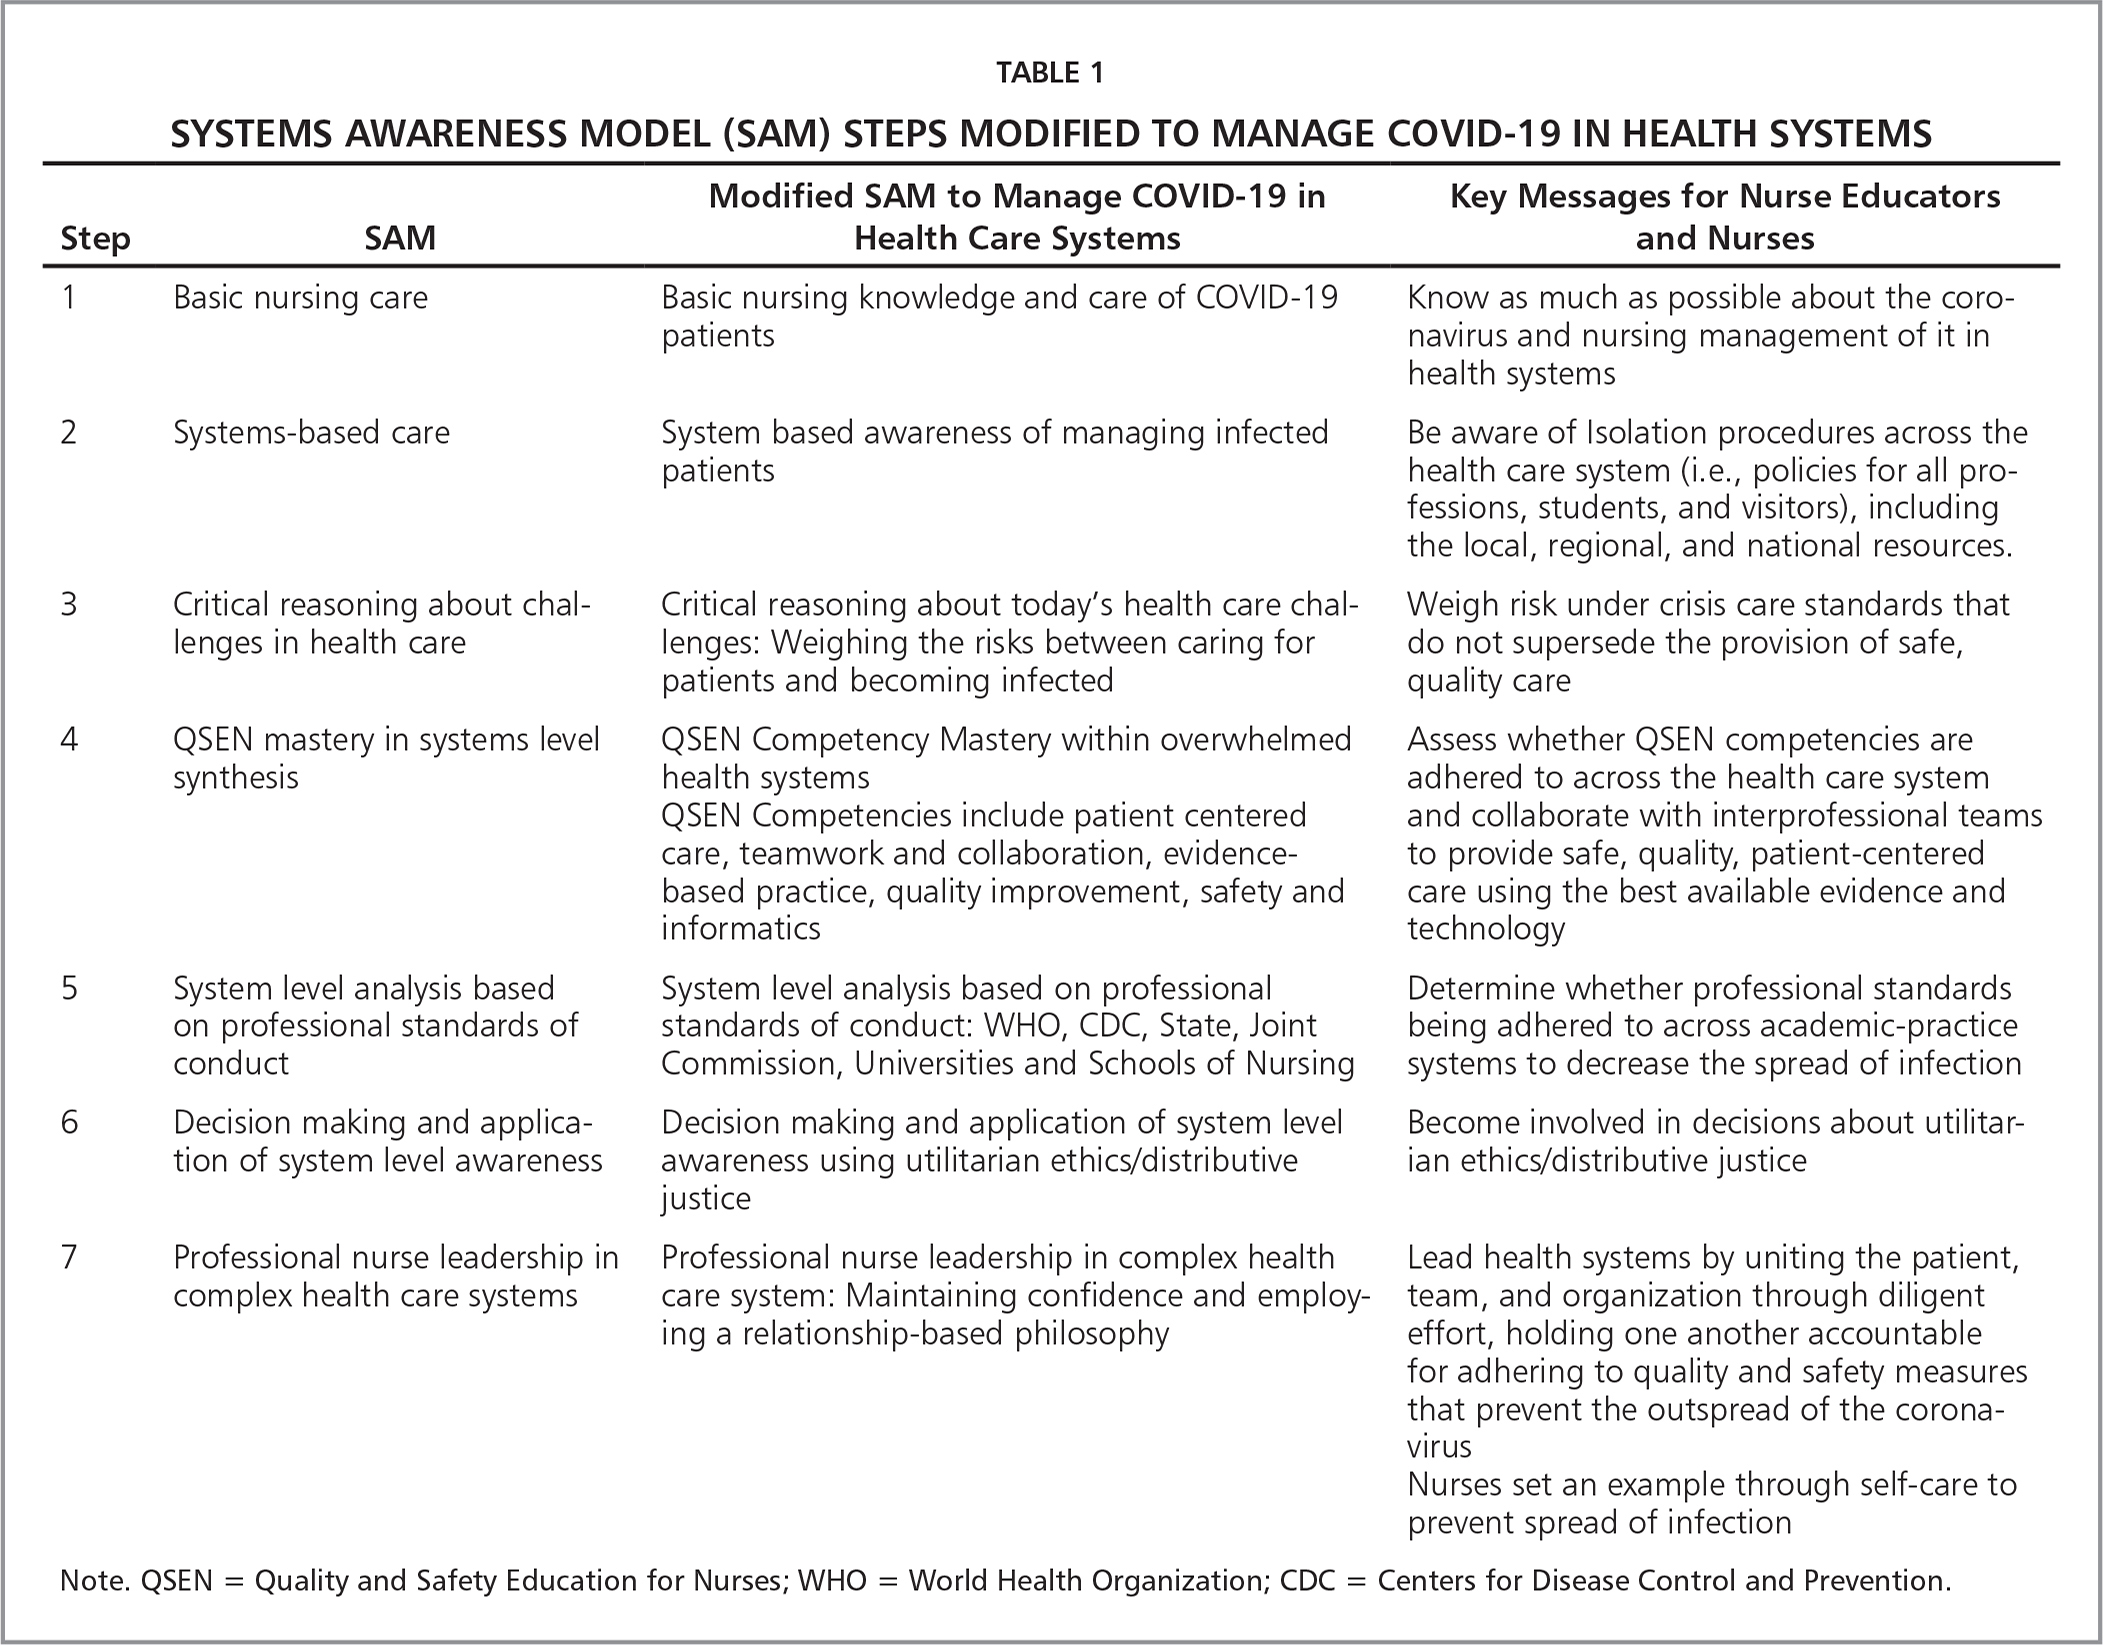 Systems Awareness Model (SAM) Steps Modified to Manage COVID-19 in Health Systems